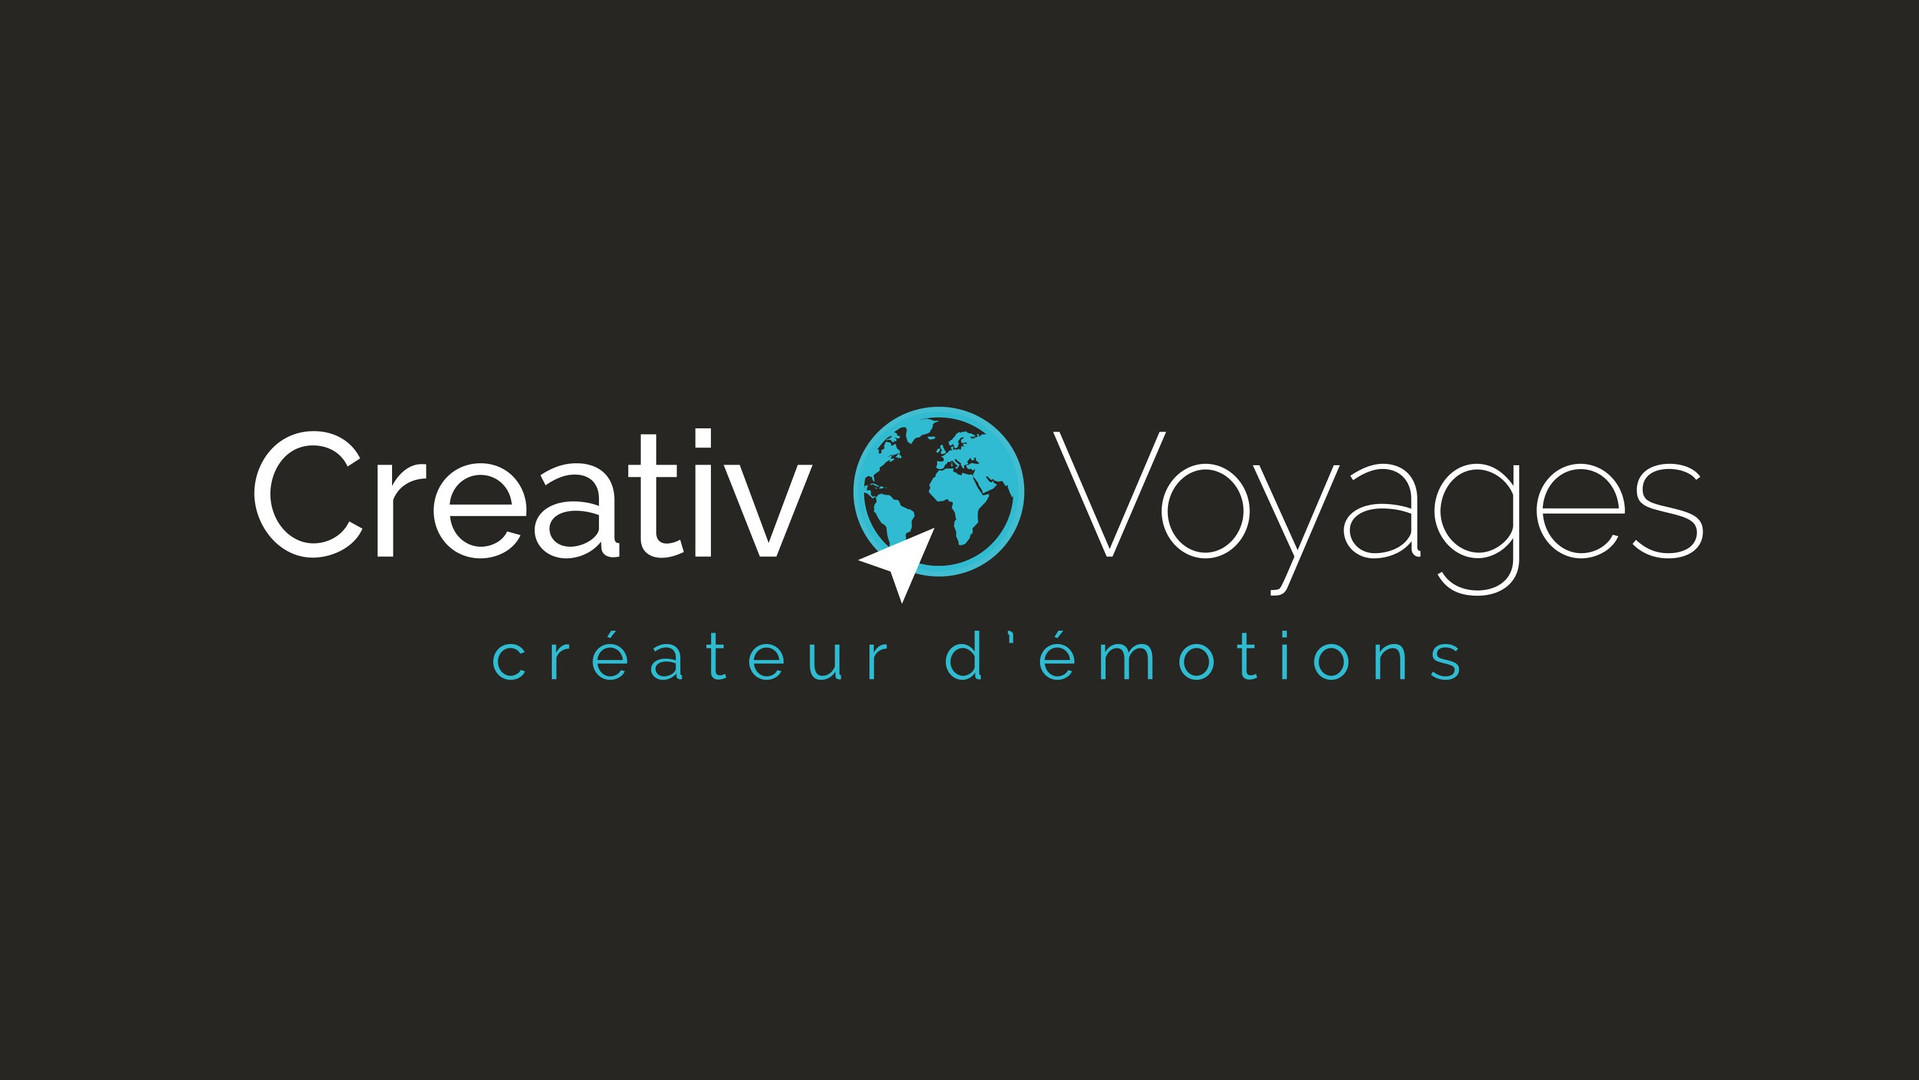 logo-creativ-voyages-final-2.jpg